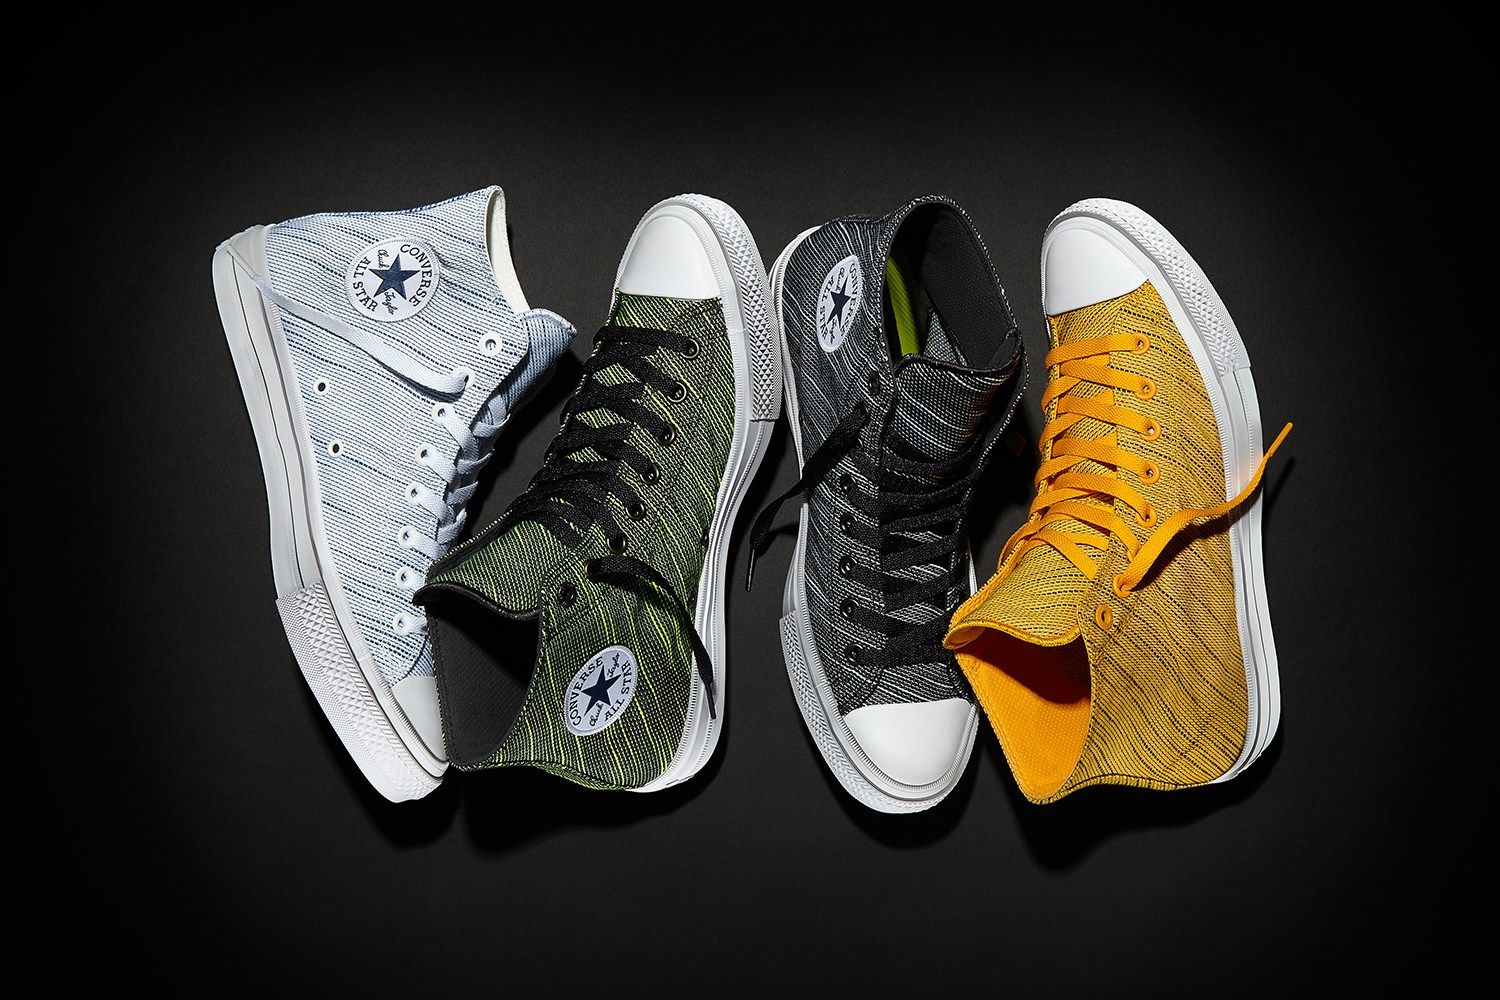 218847d1f Converse Introduces Knit Takes on the Chuck Taylor All Star II ...